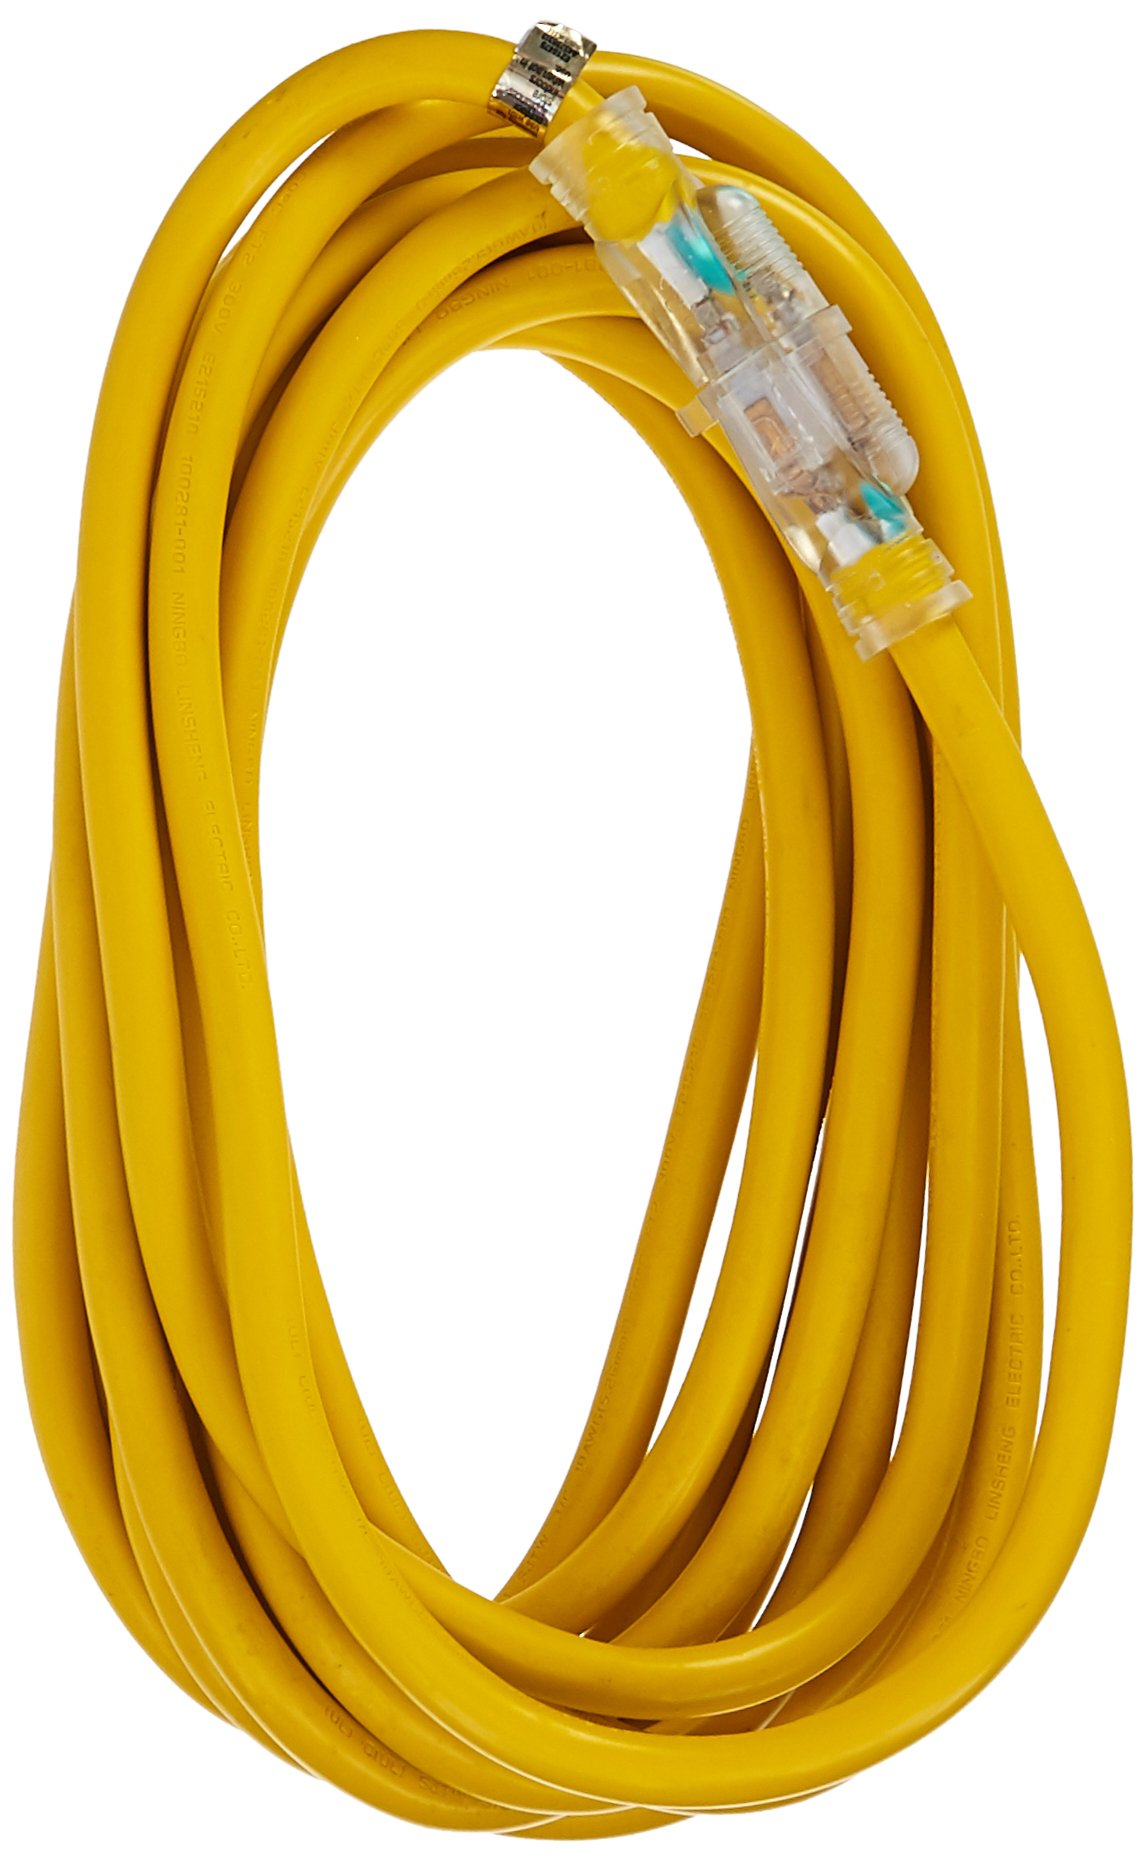 ATE Pro. USA 70048 Extension Cord, 25', 10 Gauge, 3-Prong